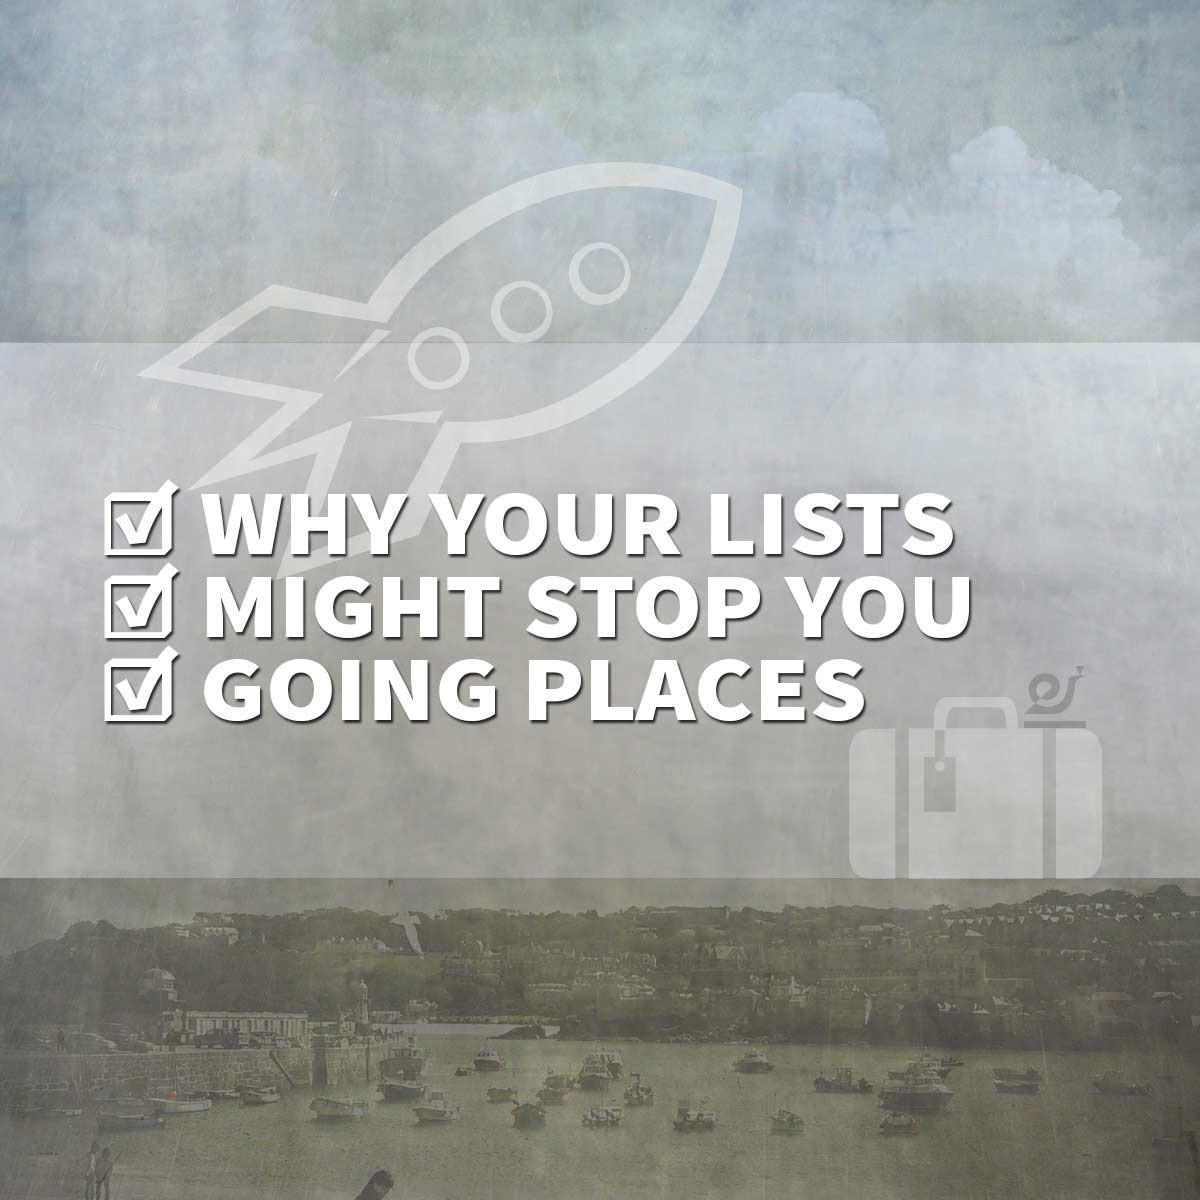 Why your lists might stop you going places